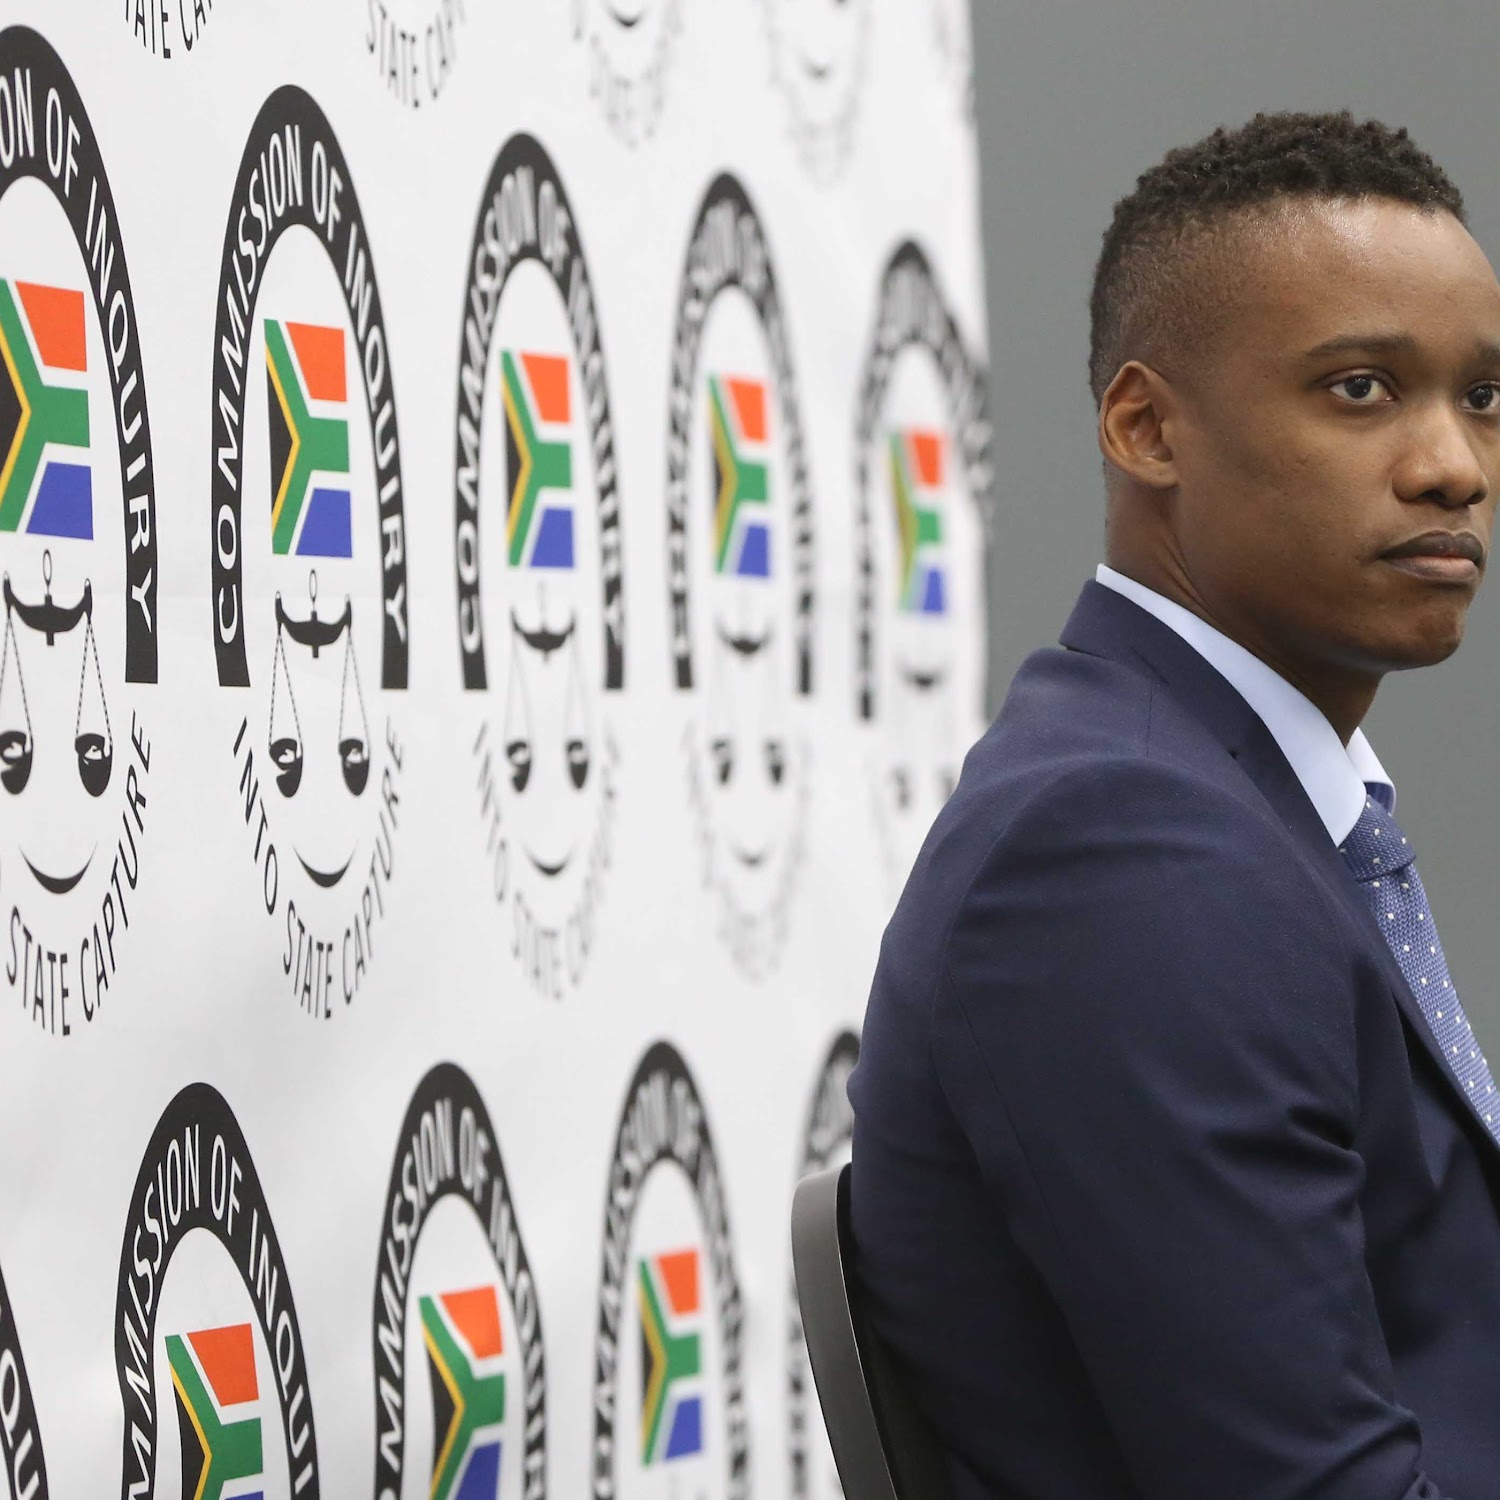 Duduzane Zuma Asked Why Meetings Were Held At Gupta Mansion Not His Own Home 600m Away